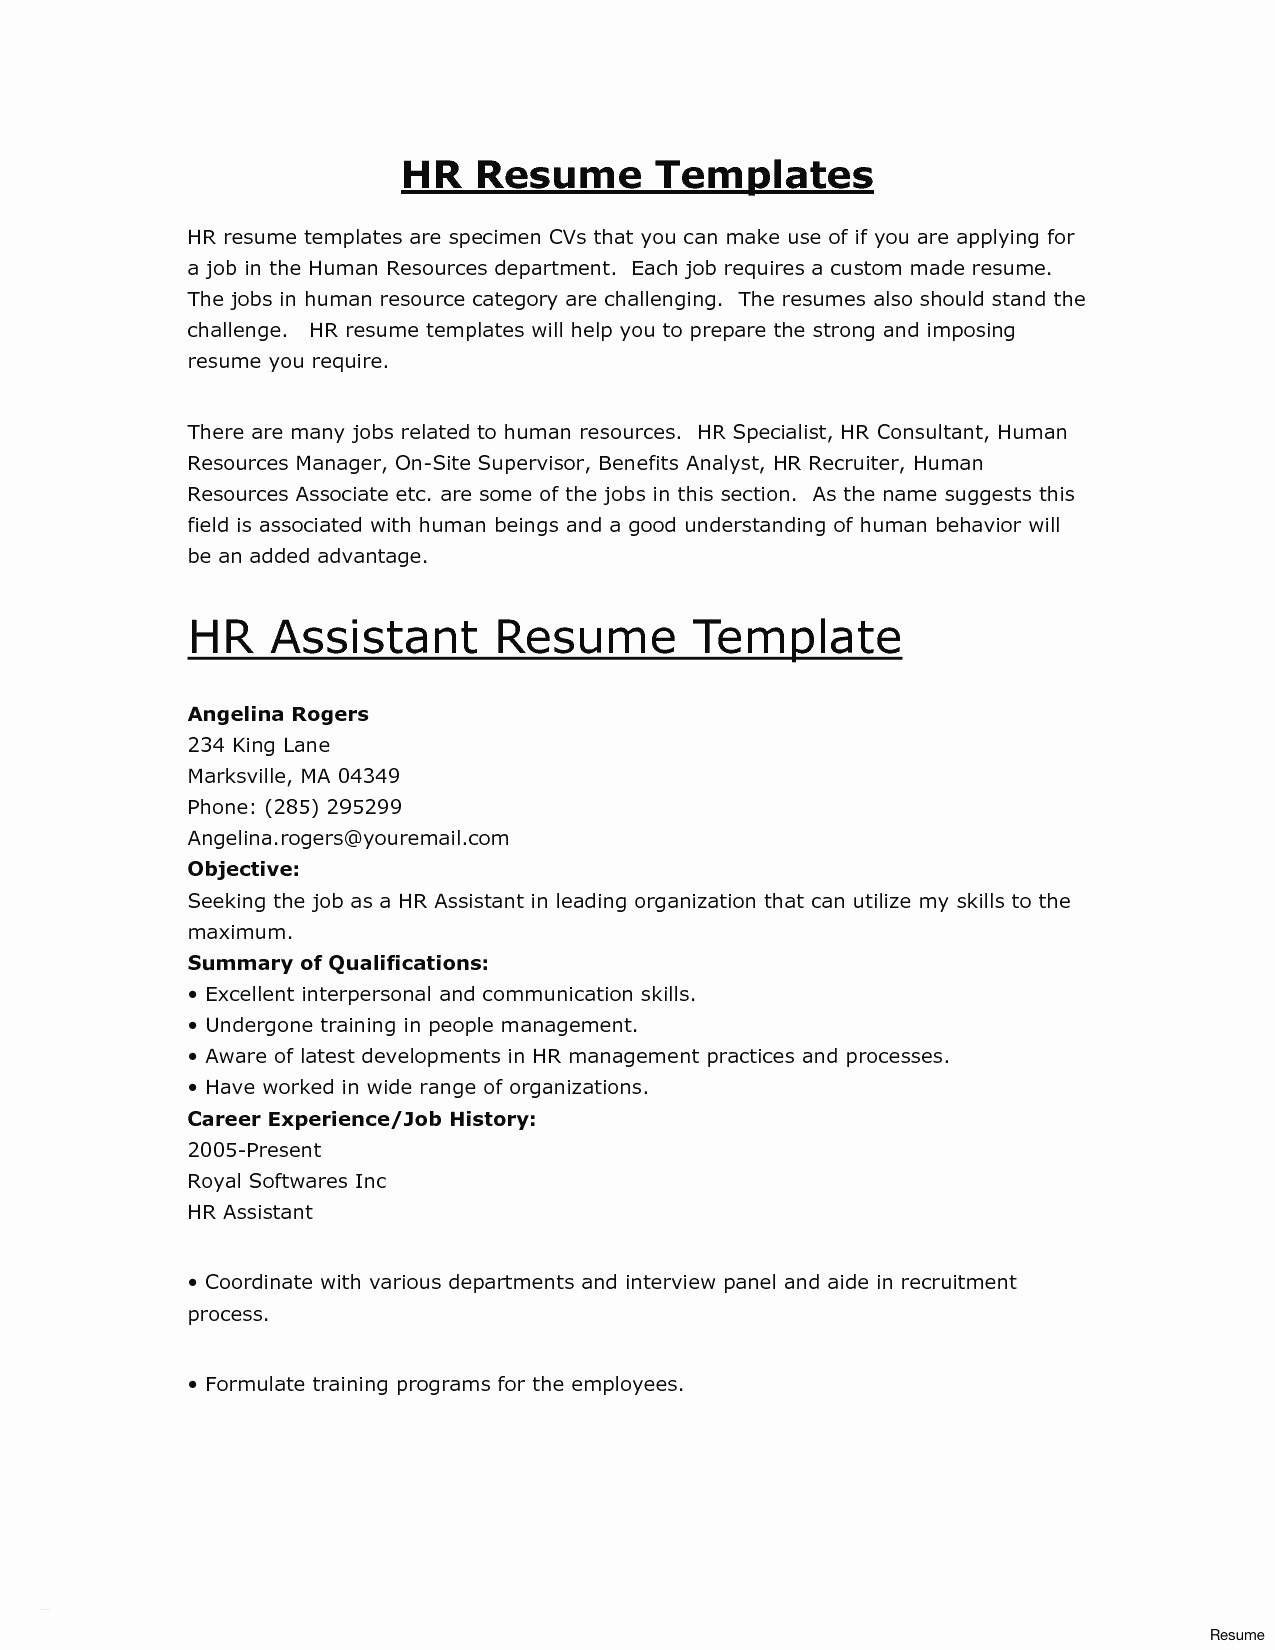 Analyst Resume Template - Download Luxury Word 2013 Resume Templates